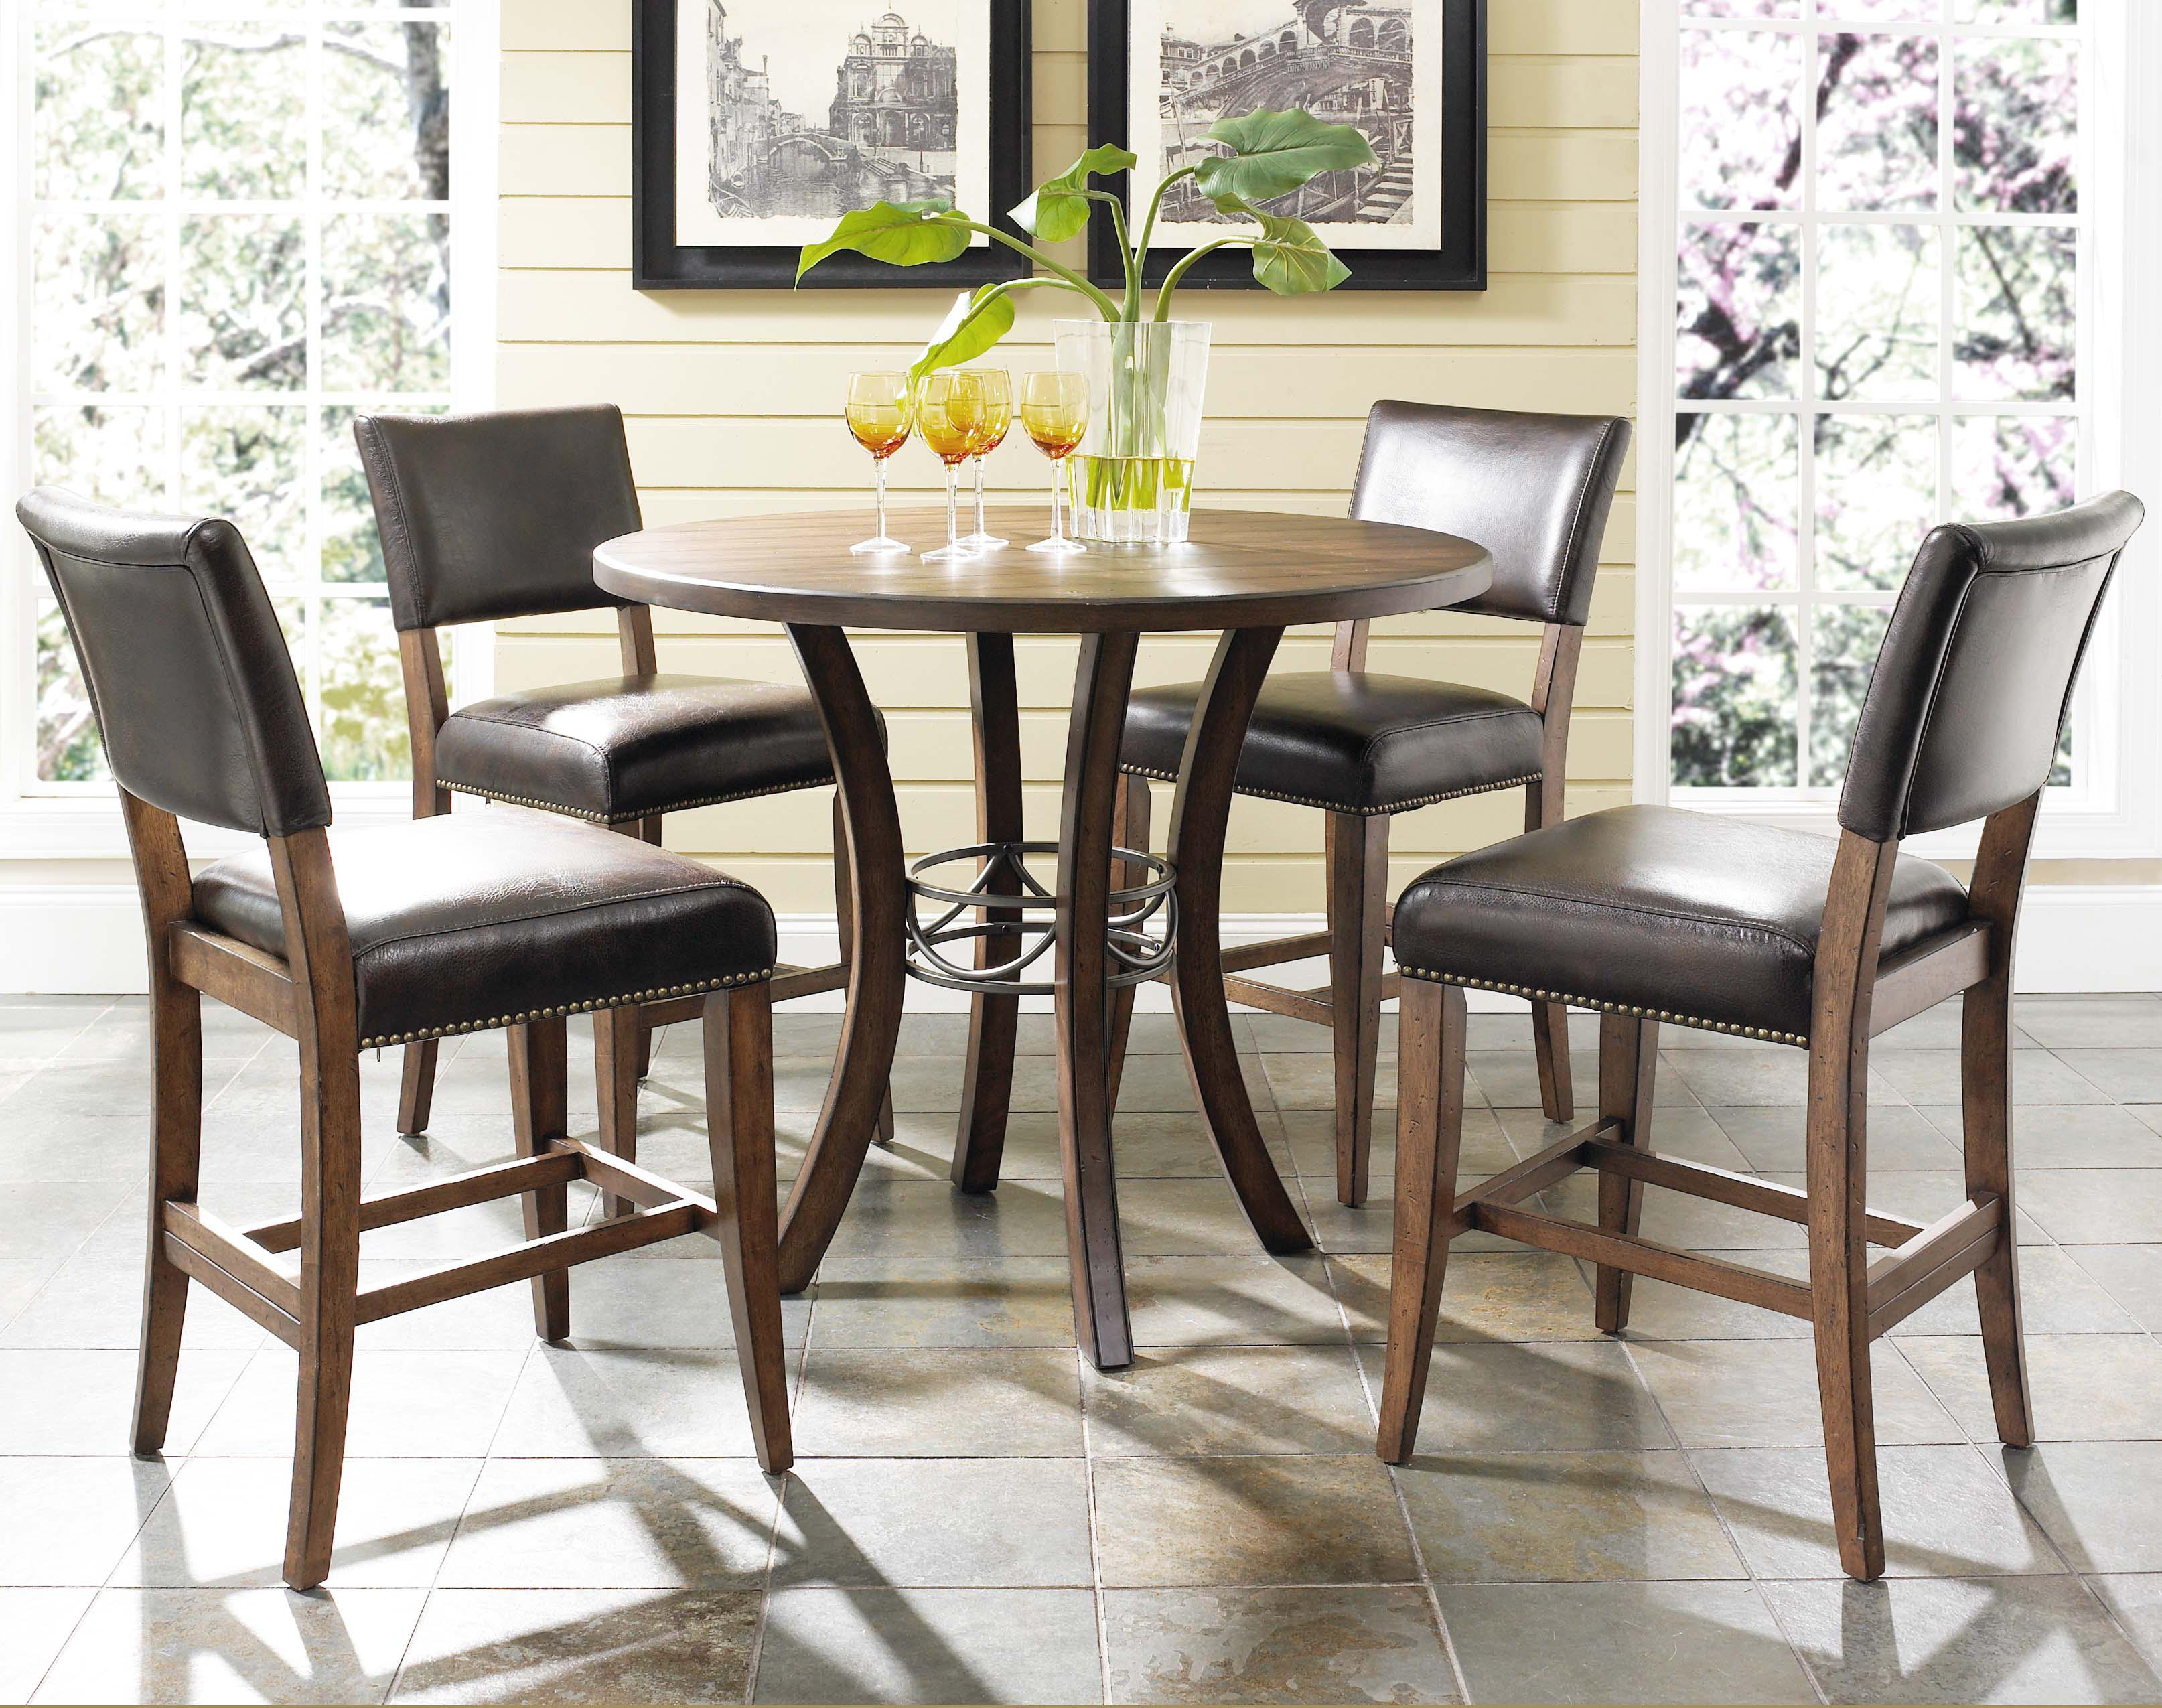 Hillsdale Cameron 5 Piece Round Counter Height Table Set - Item Number: 4671CTBWS4